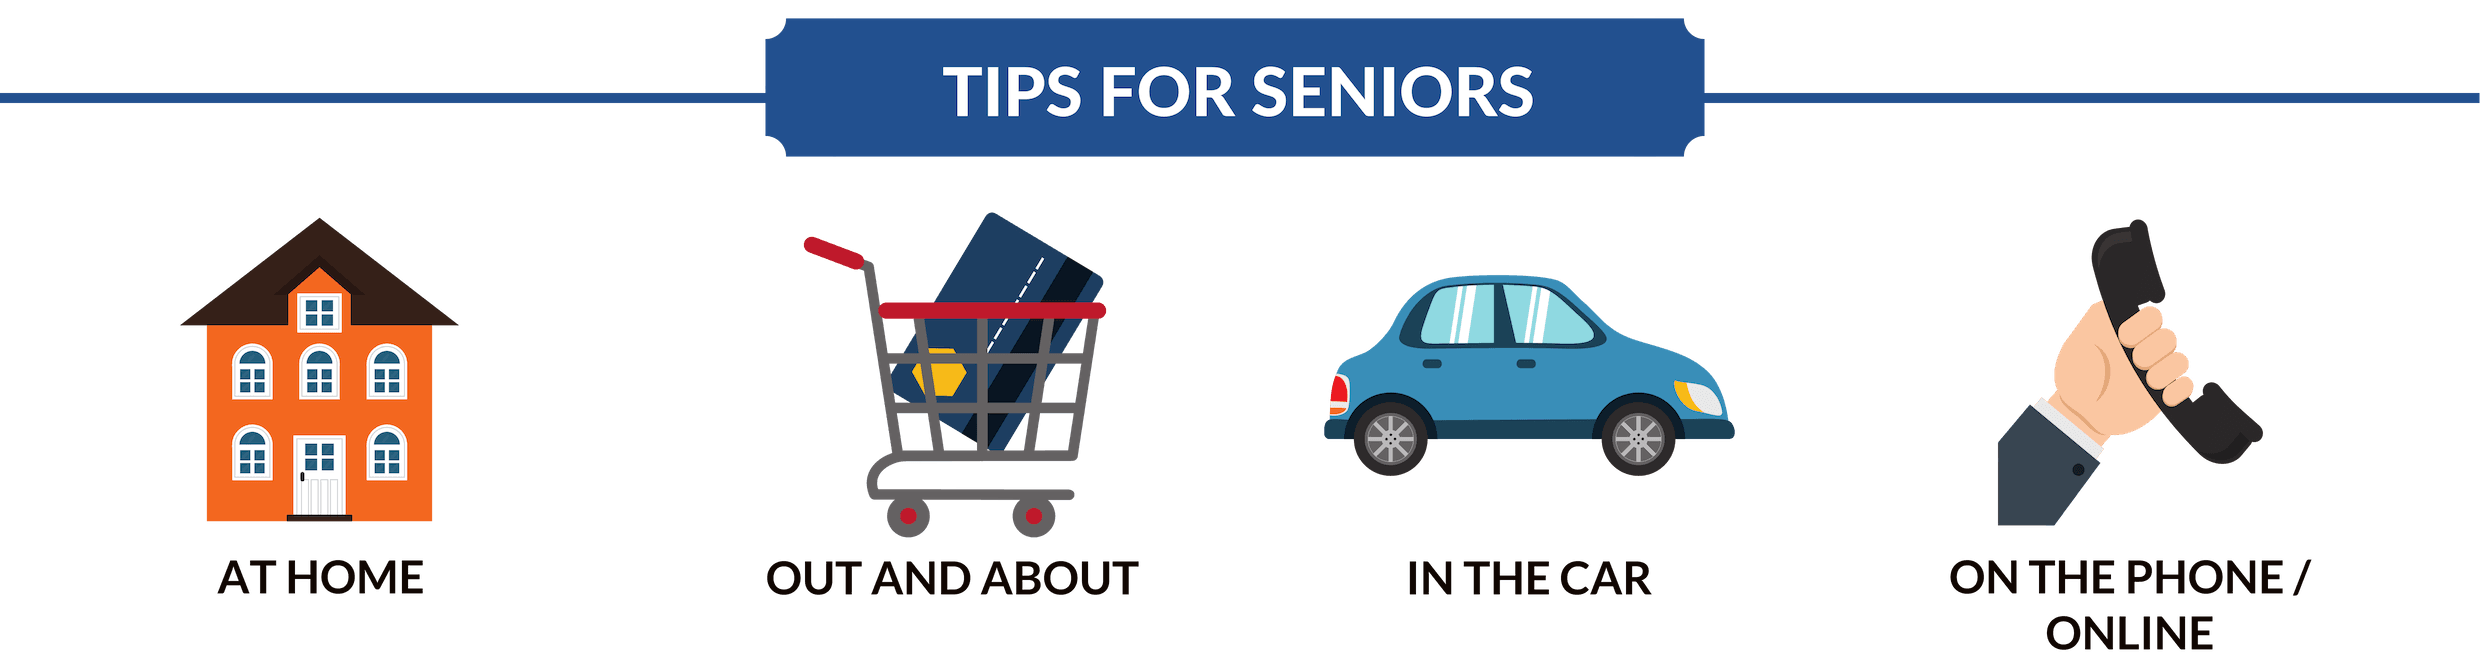 Banner for Senior Safety Tips